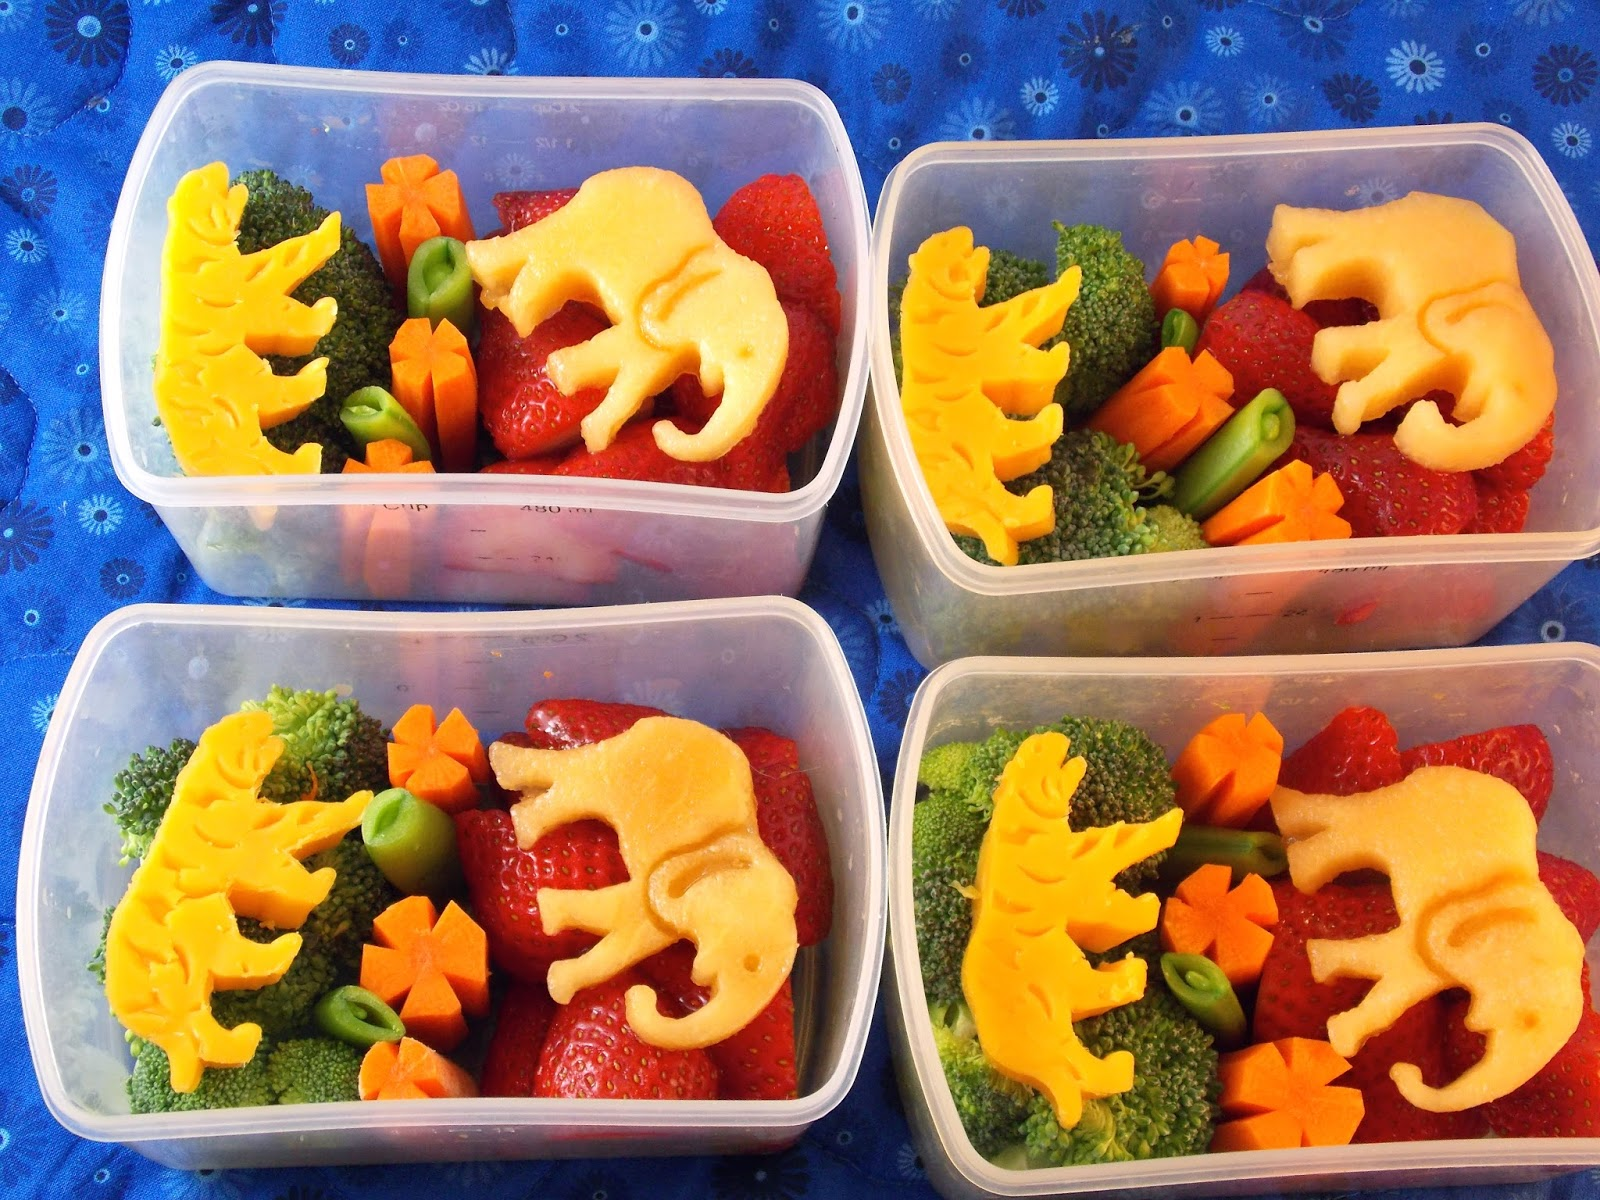 Fit & Fresh snack containers - cute snacks!